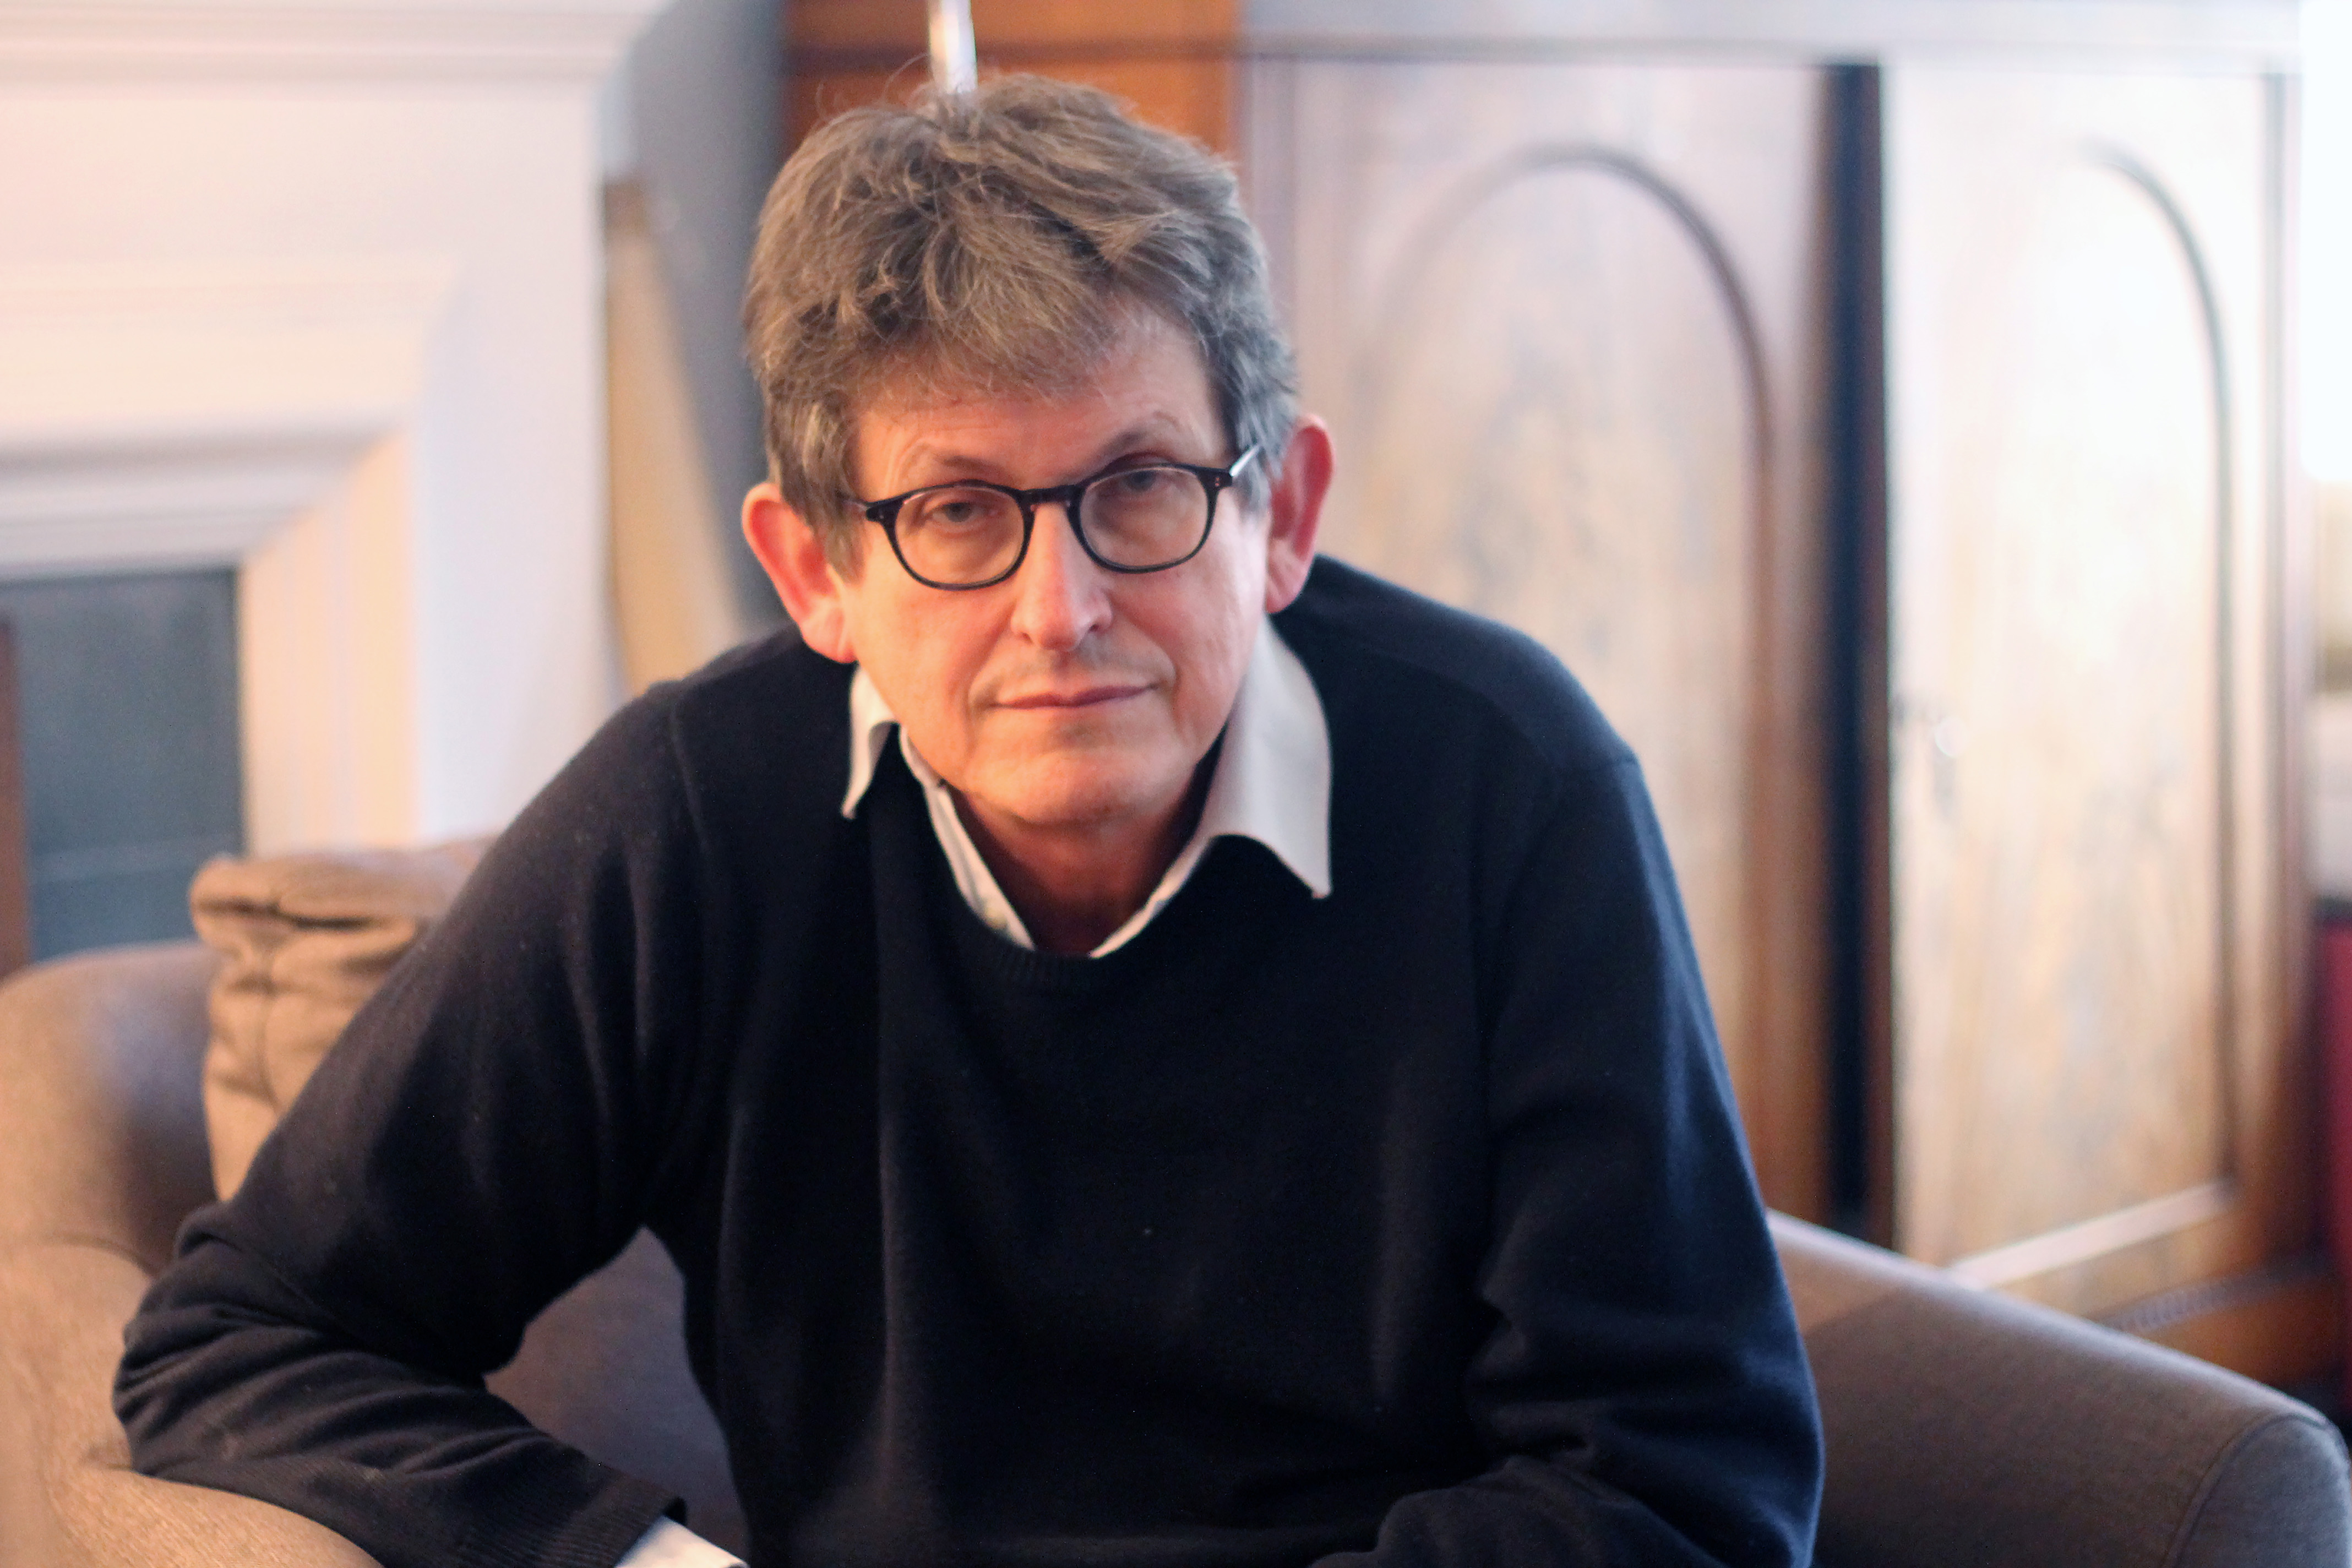 Interview with Alan Rusbridger in Oxford on the 22nd of February